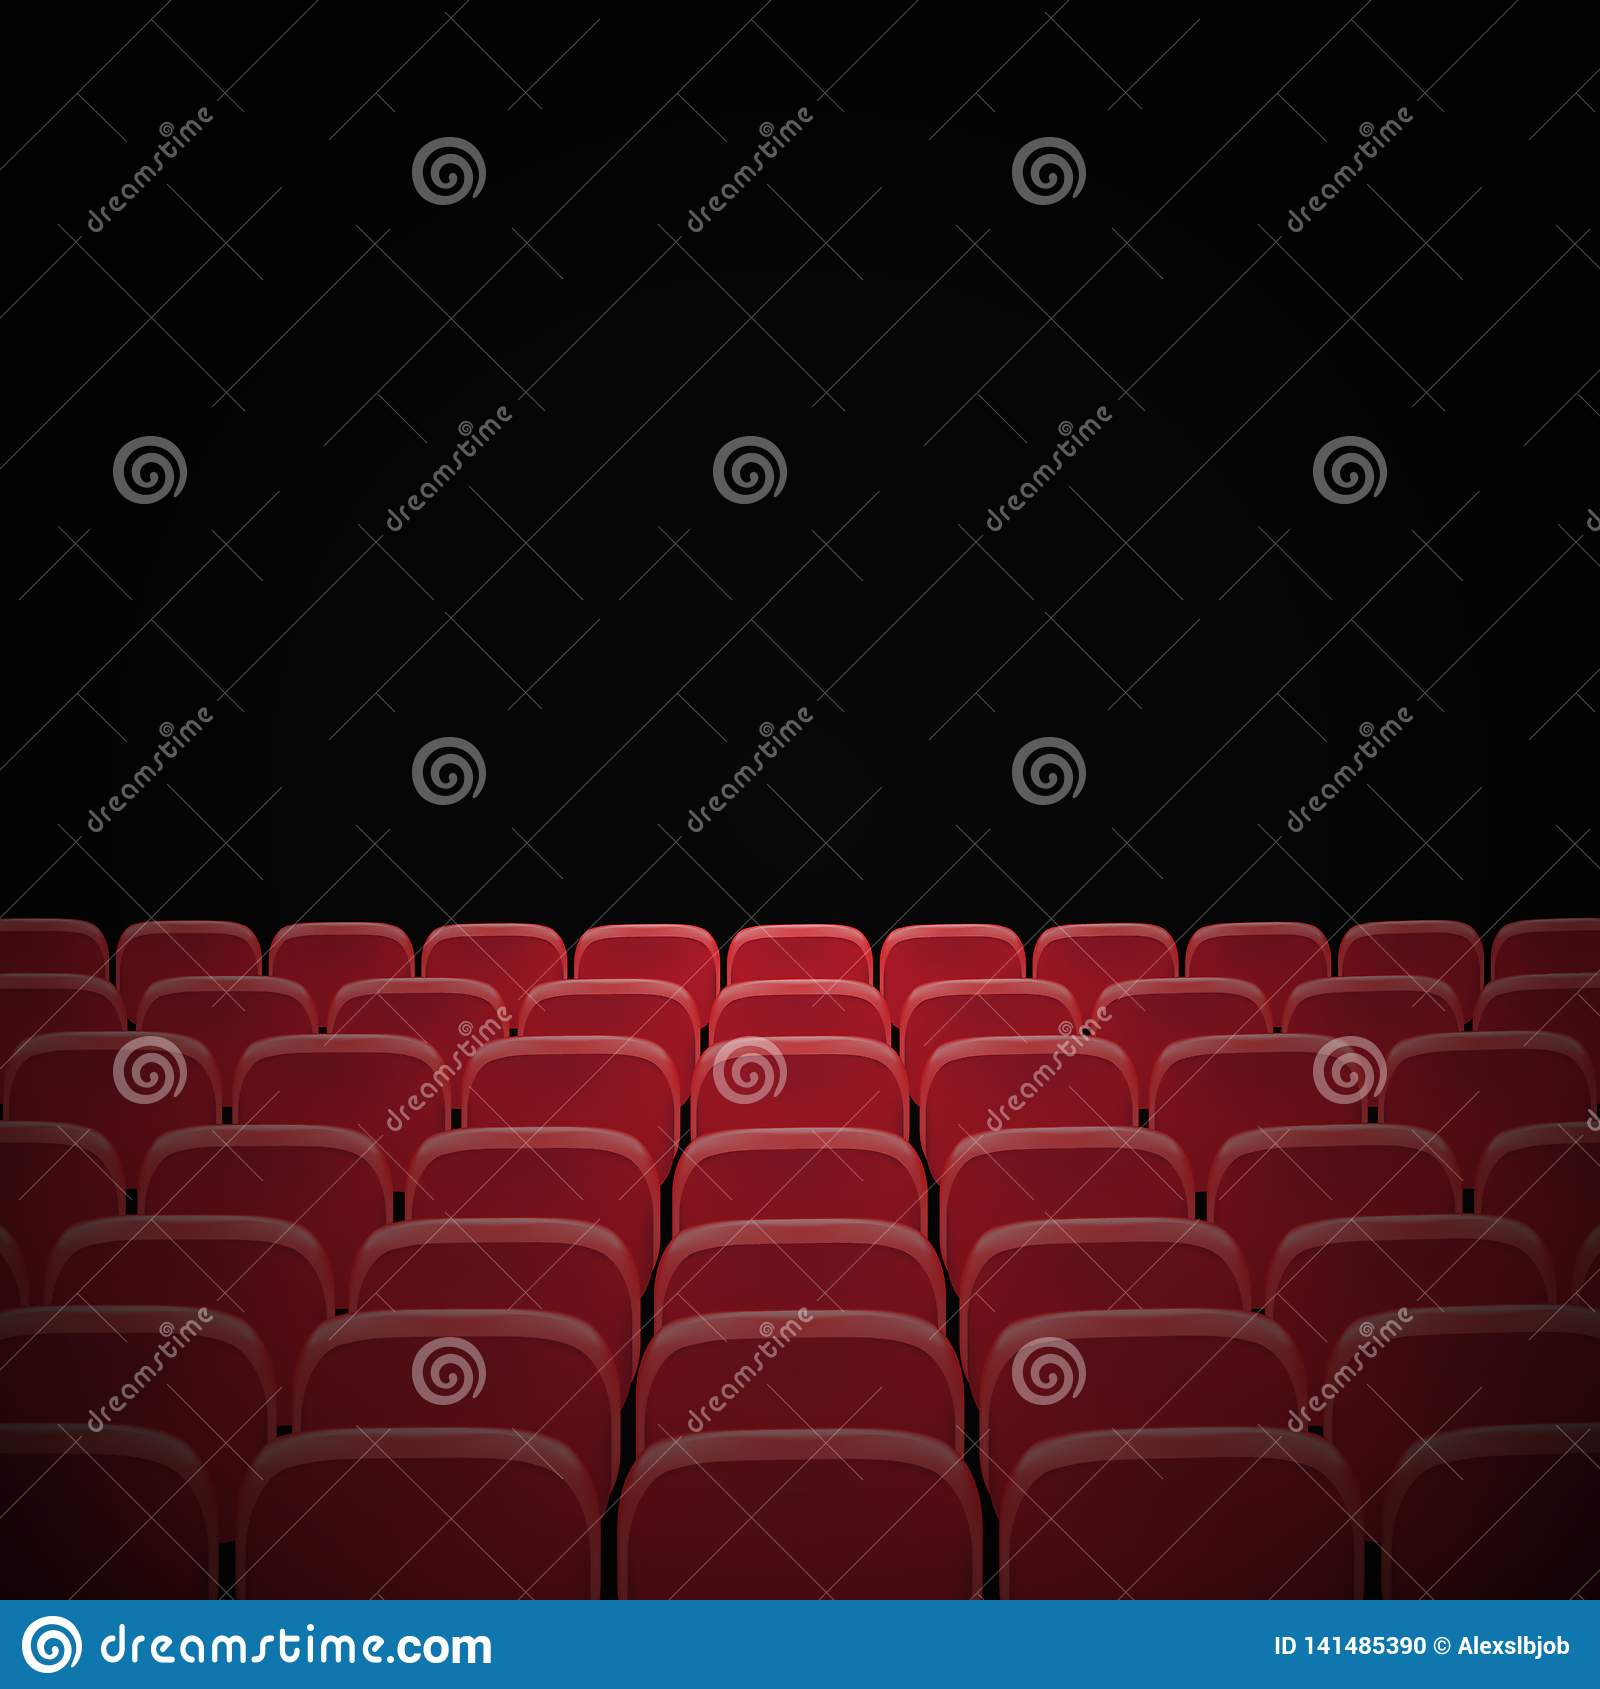 Rows Of Red Cinema Or Theater Seats In Front Of Black Blank Screen Wide Empty Movie Theater Auditorium With Red Seats Vector Stock Illustration Illustration Of Nobody Cinema 141485390